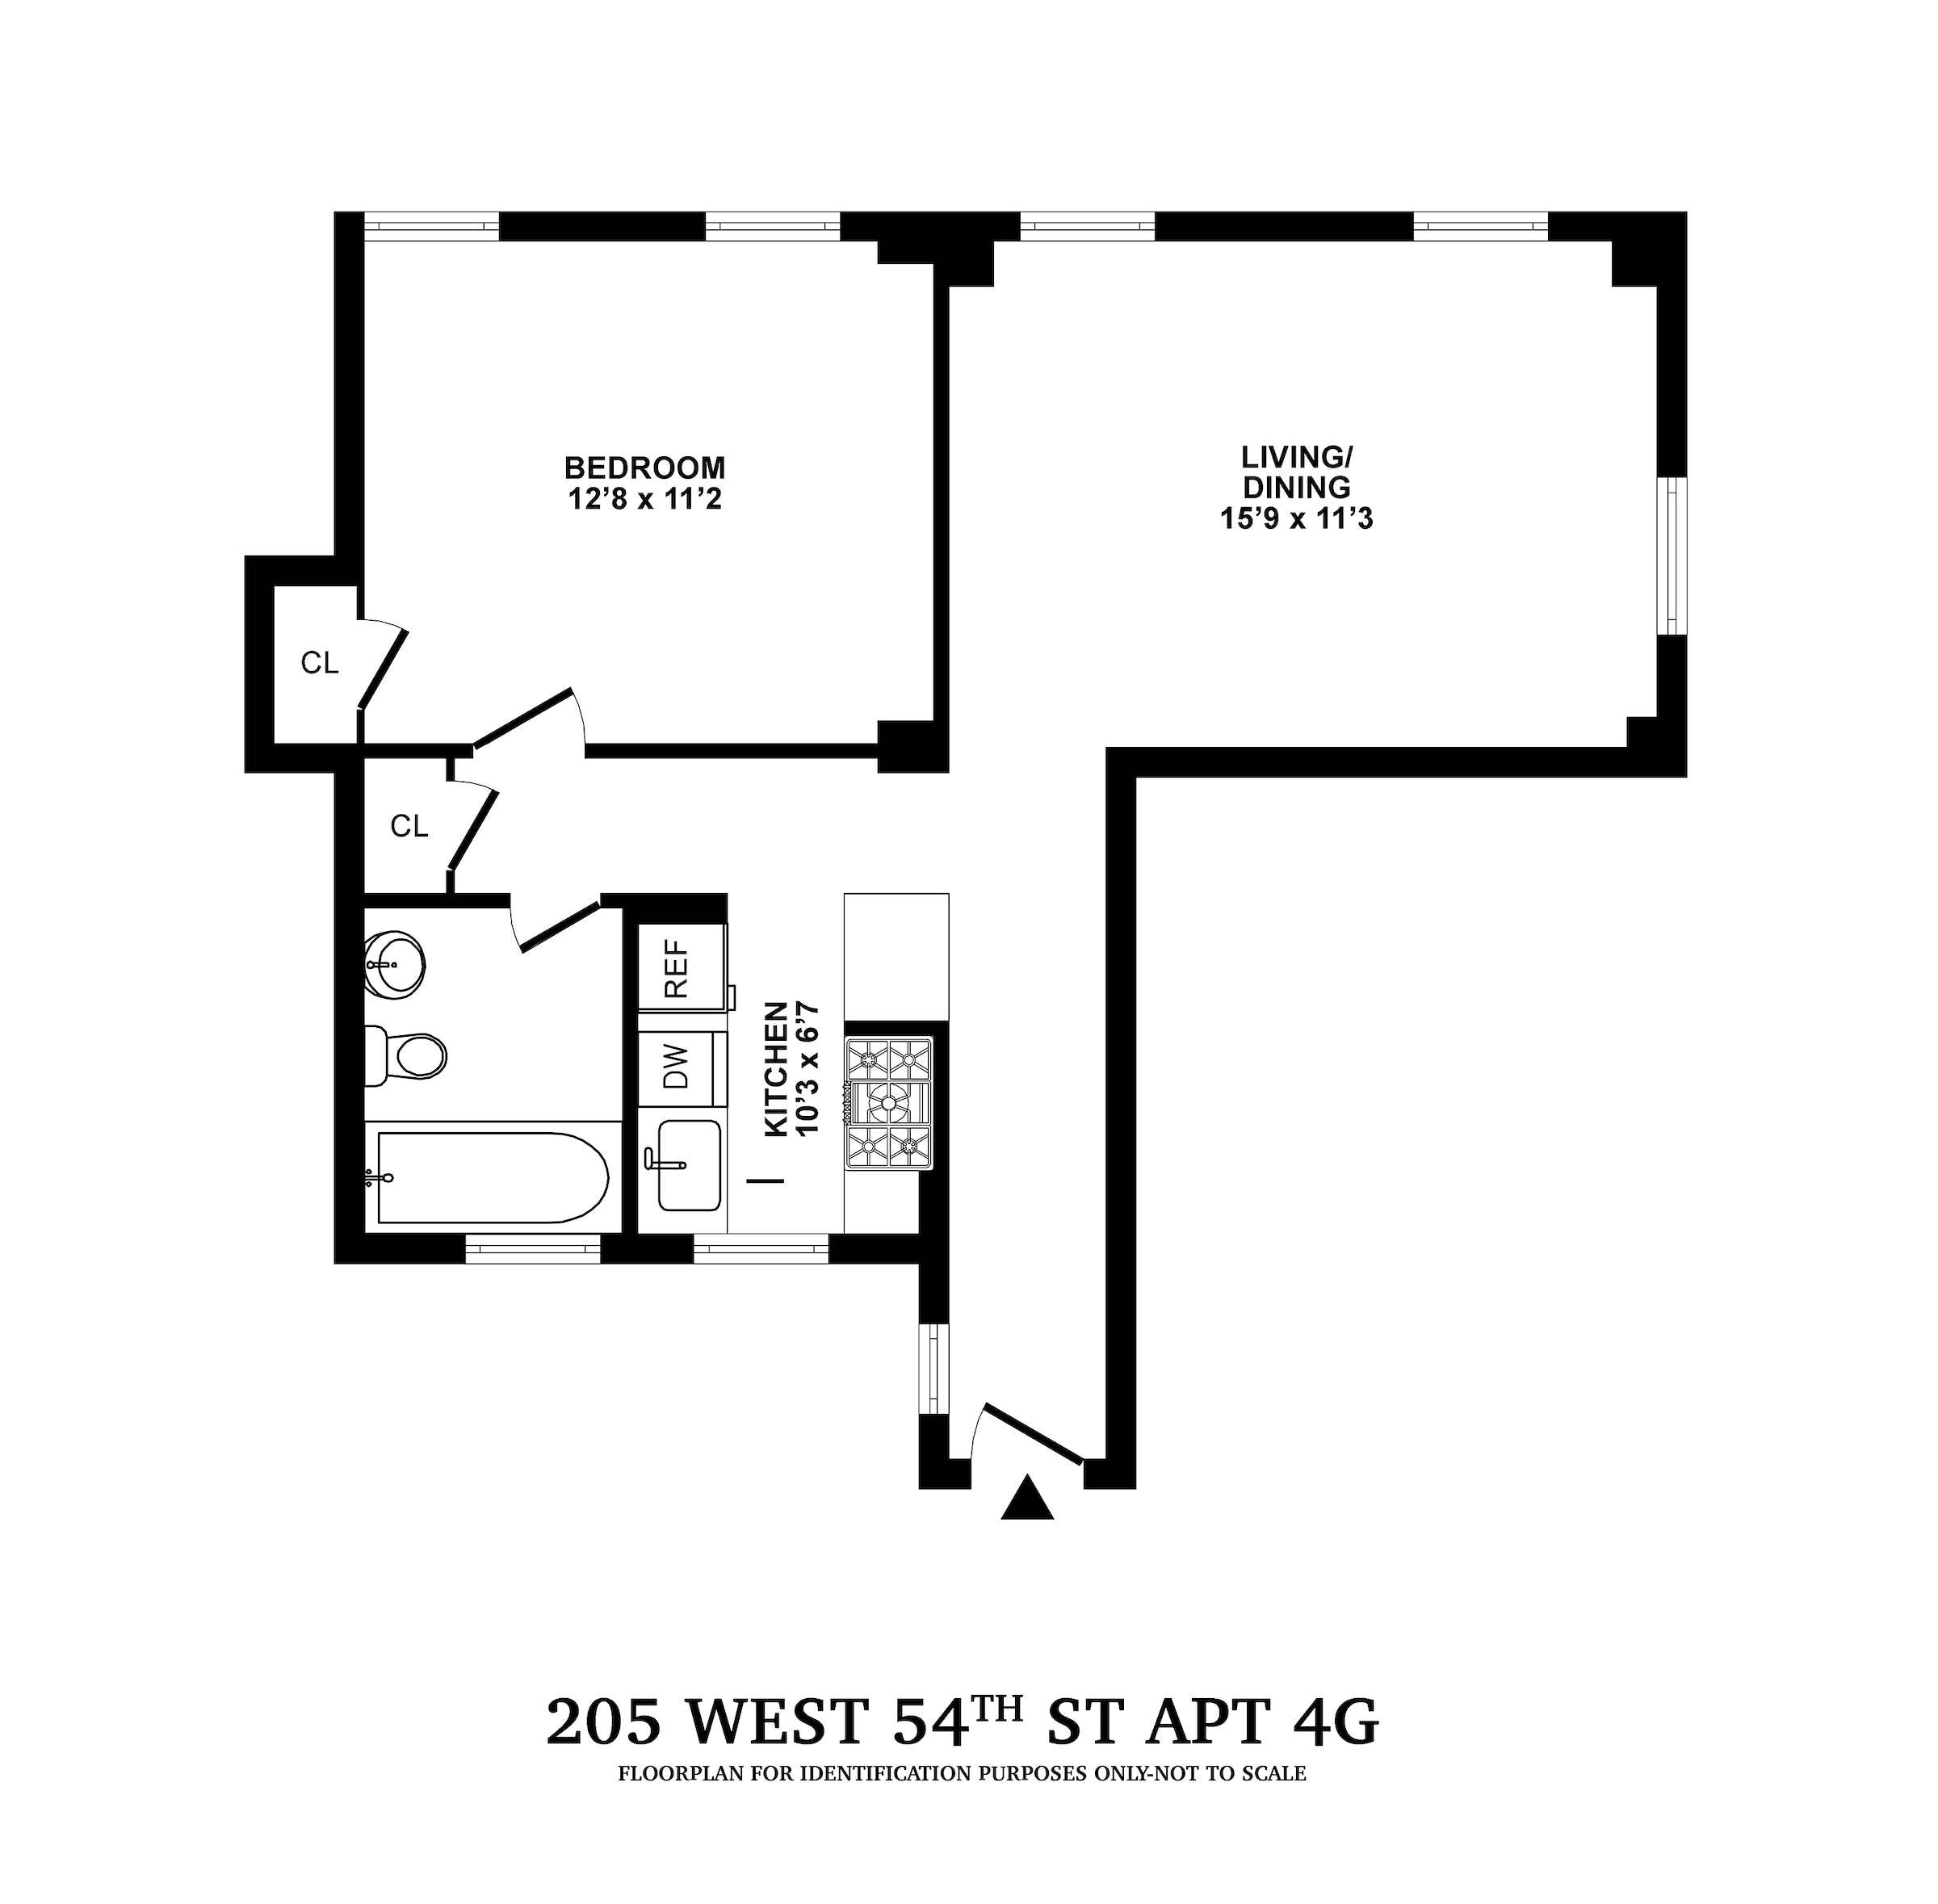 West 54th Apartments: Ablemarle At 205 West 54th Street In Midtown West / Hell's